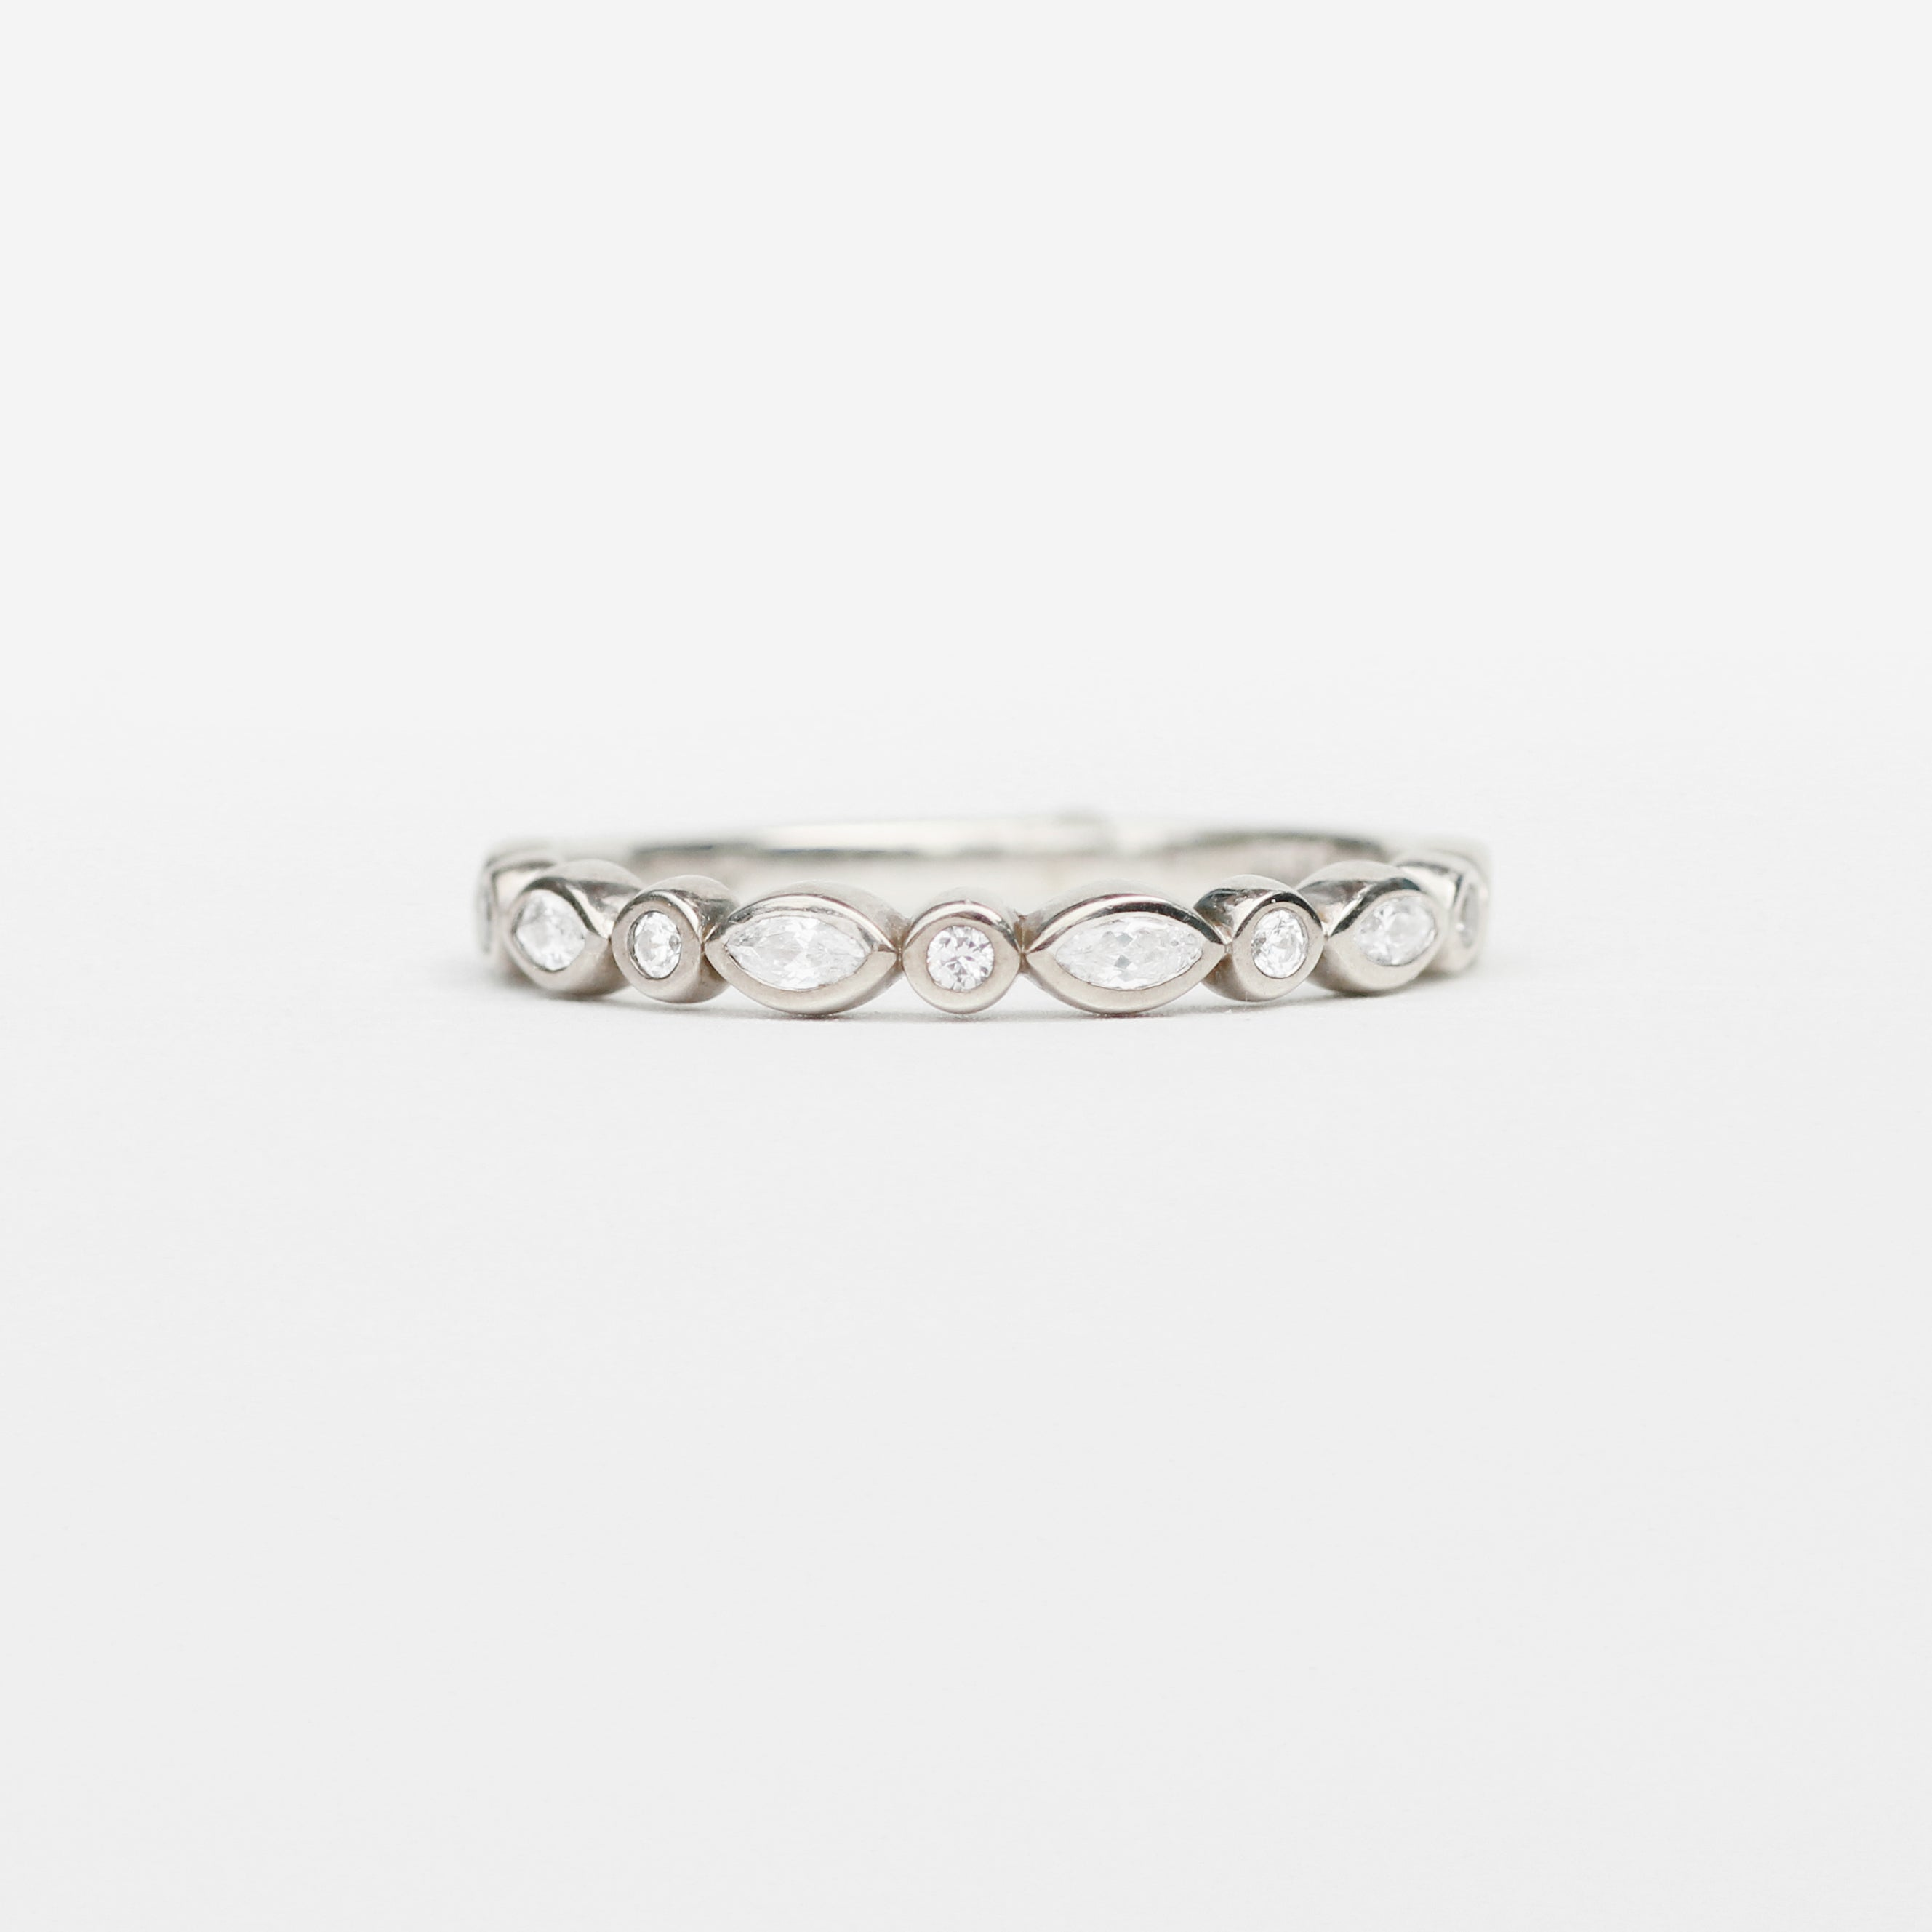 Ellyot band - diamonds in marquise and round cuts, bezel set - Your choice of metal - Celestial Diamonds ® by Midwinter Co.